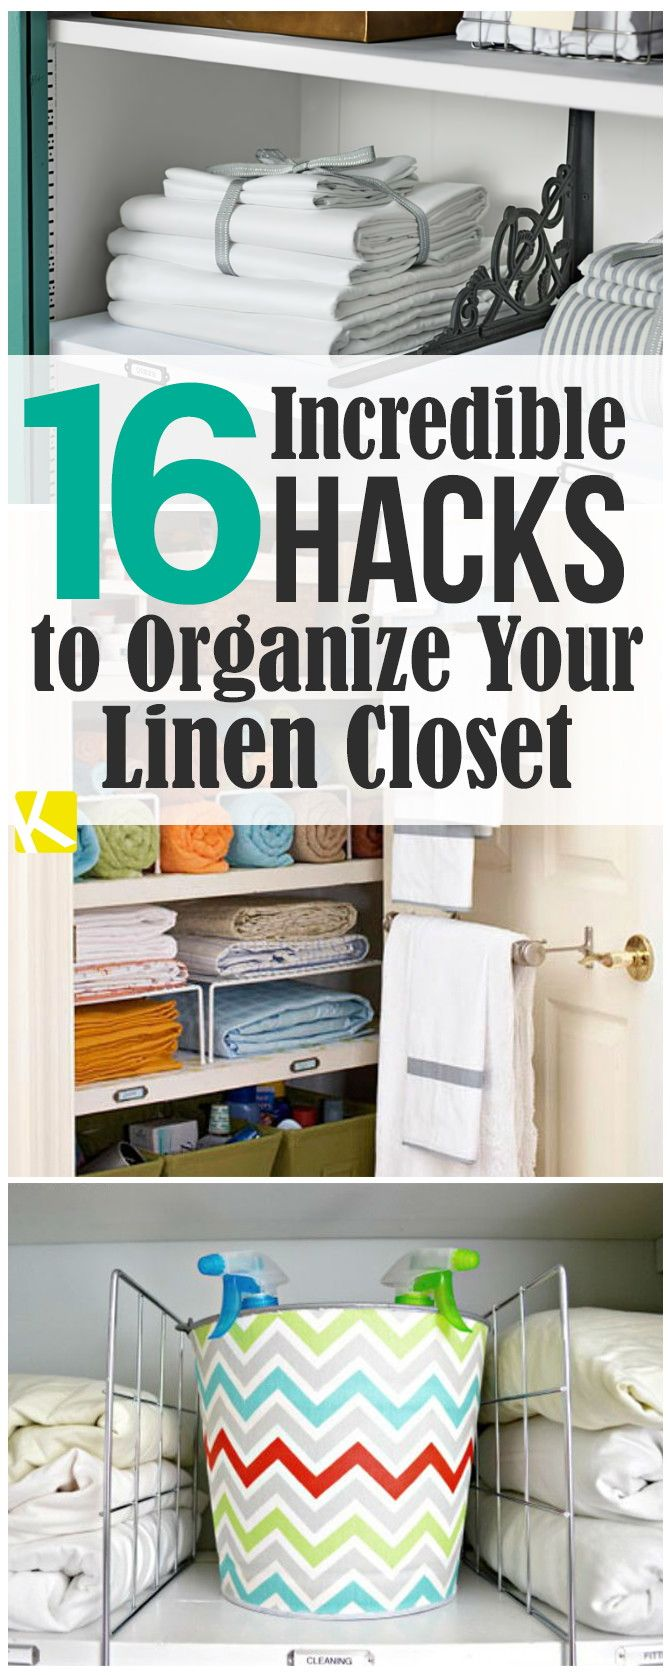 Superb Organize Your Linen Closet Part - 13: Best 25+ Linen Closets Ideas On Pinterest | Organize A Linen Closet,  Bathroom Closet Organization And Apartment Closet Organization